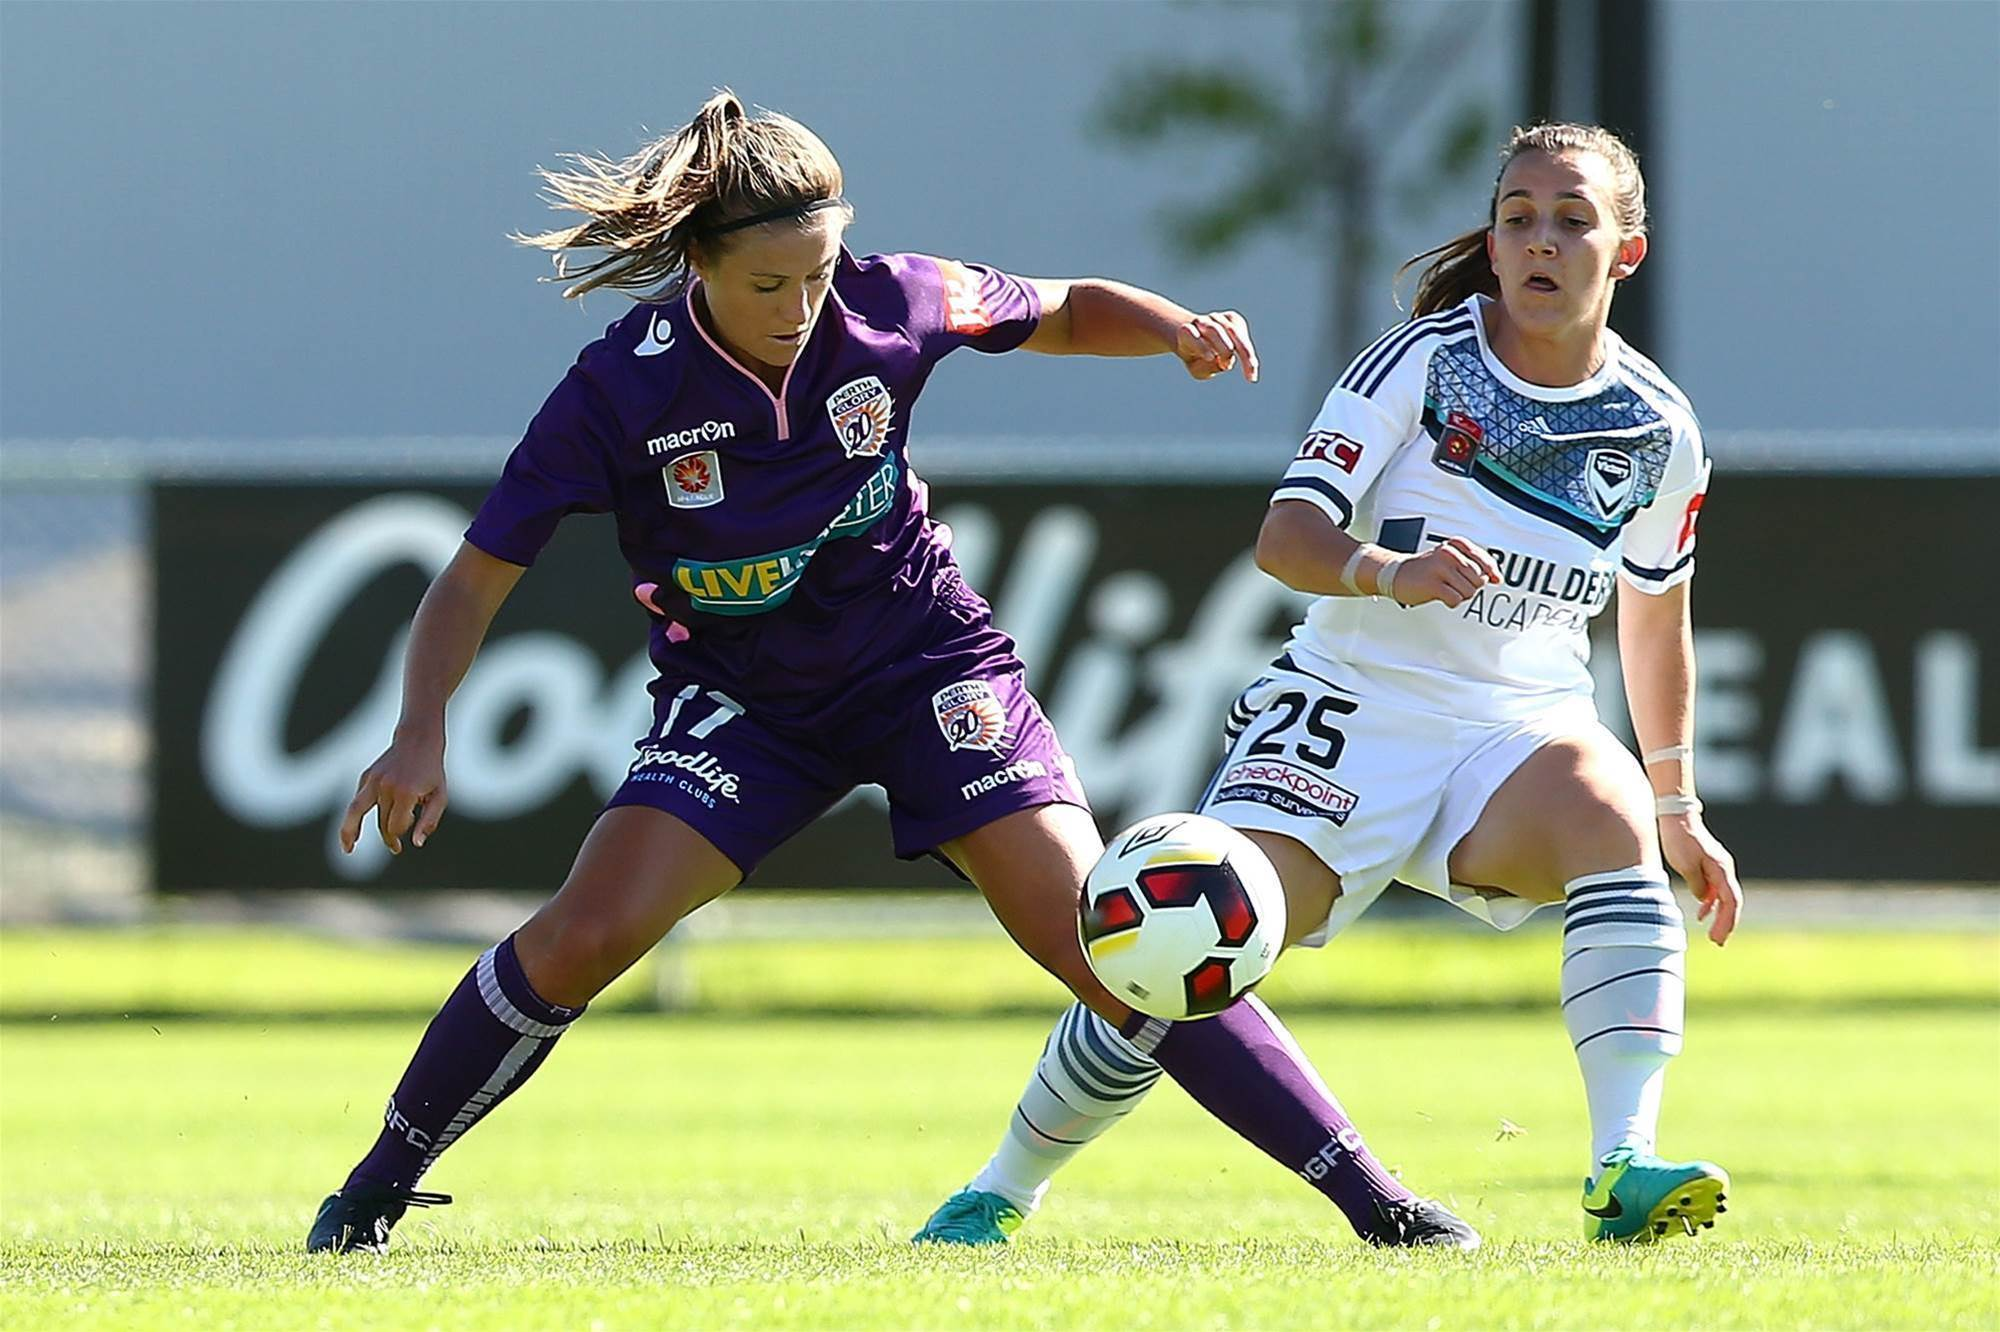 W-League Round 11 pic special